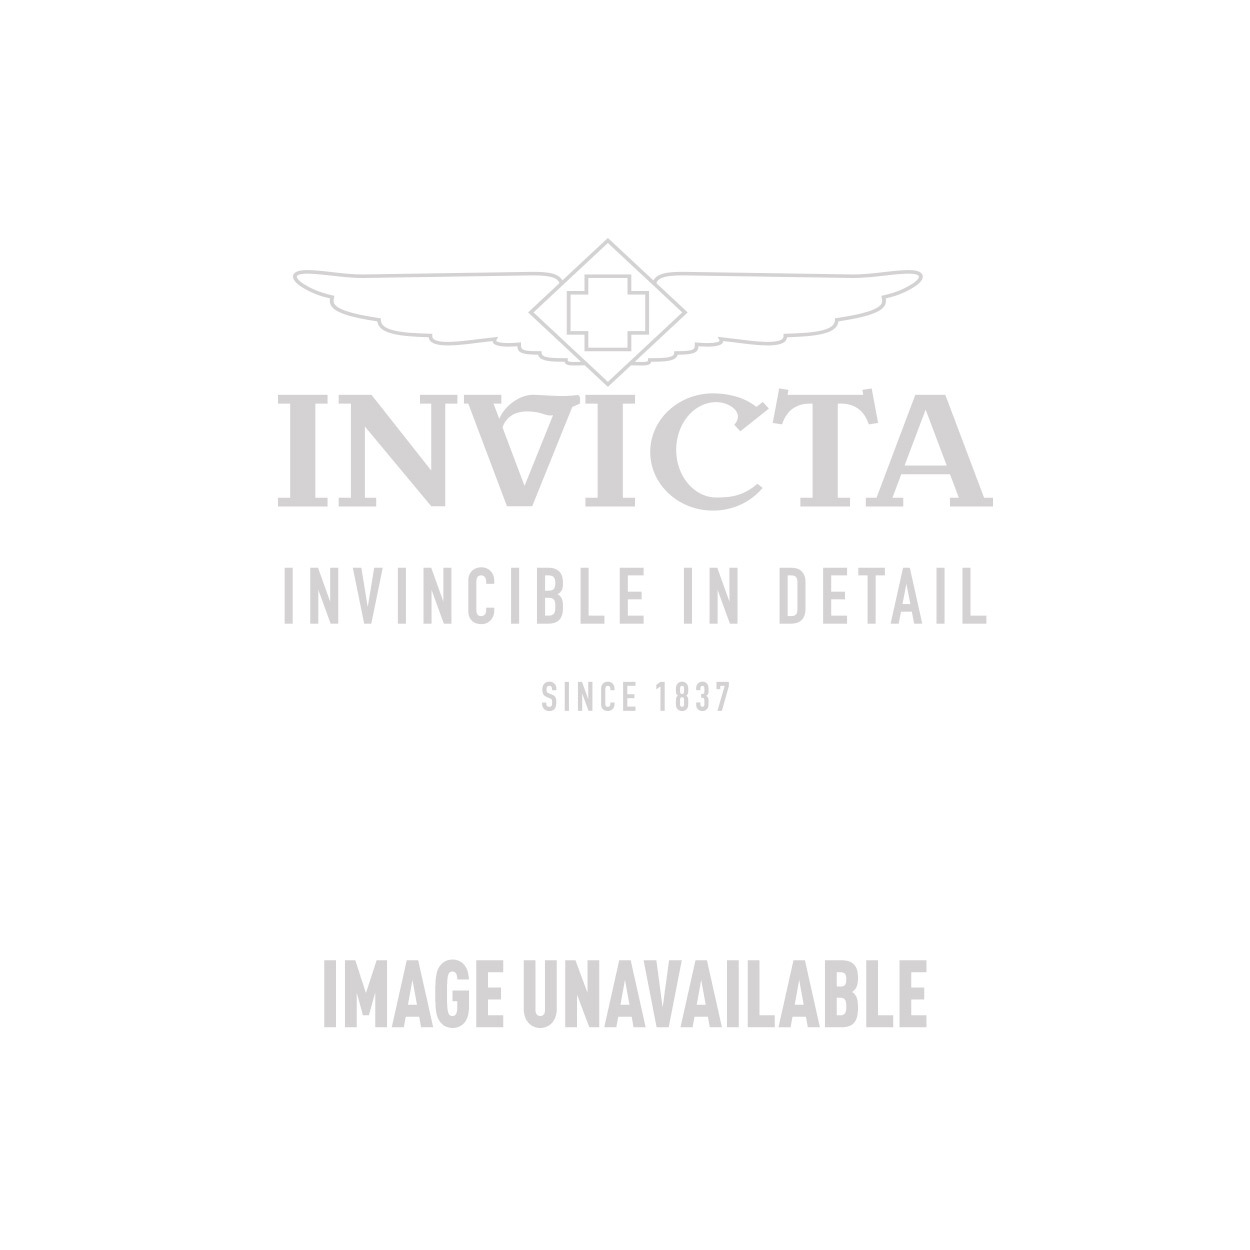 Invicta Reserve Swiss Made Quartz Watch - Stainless Steel case Stainless Steel band - Model 14206